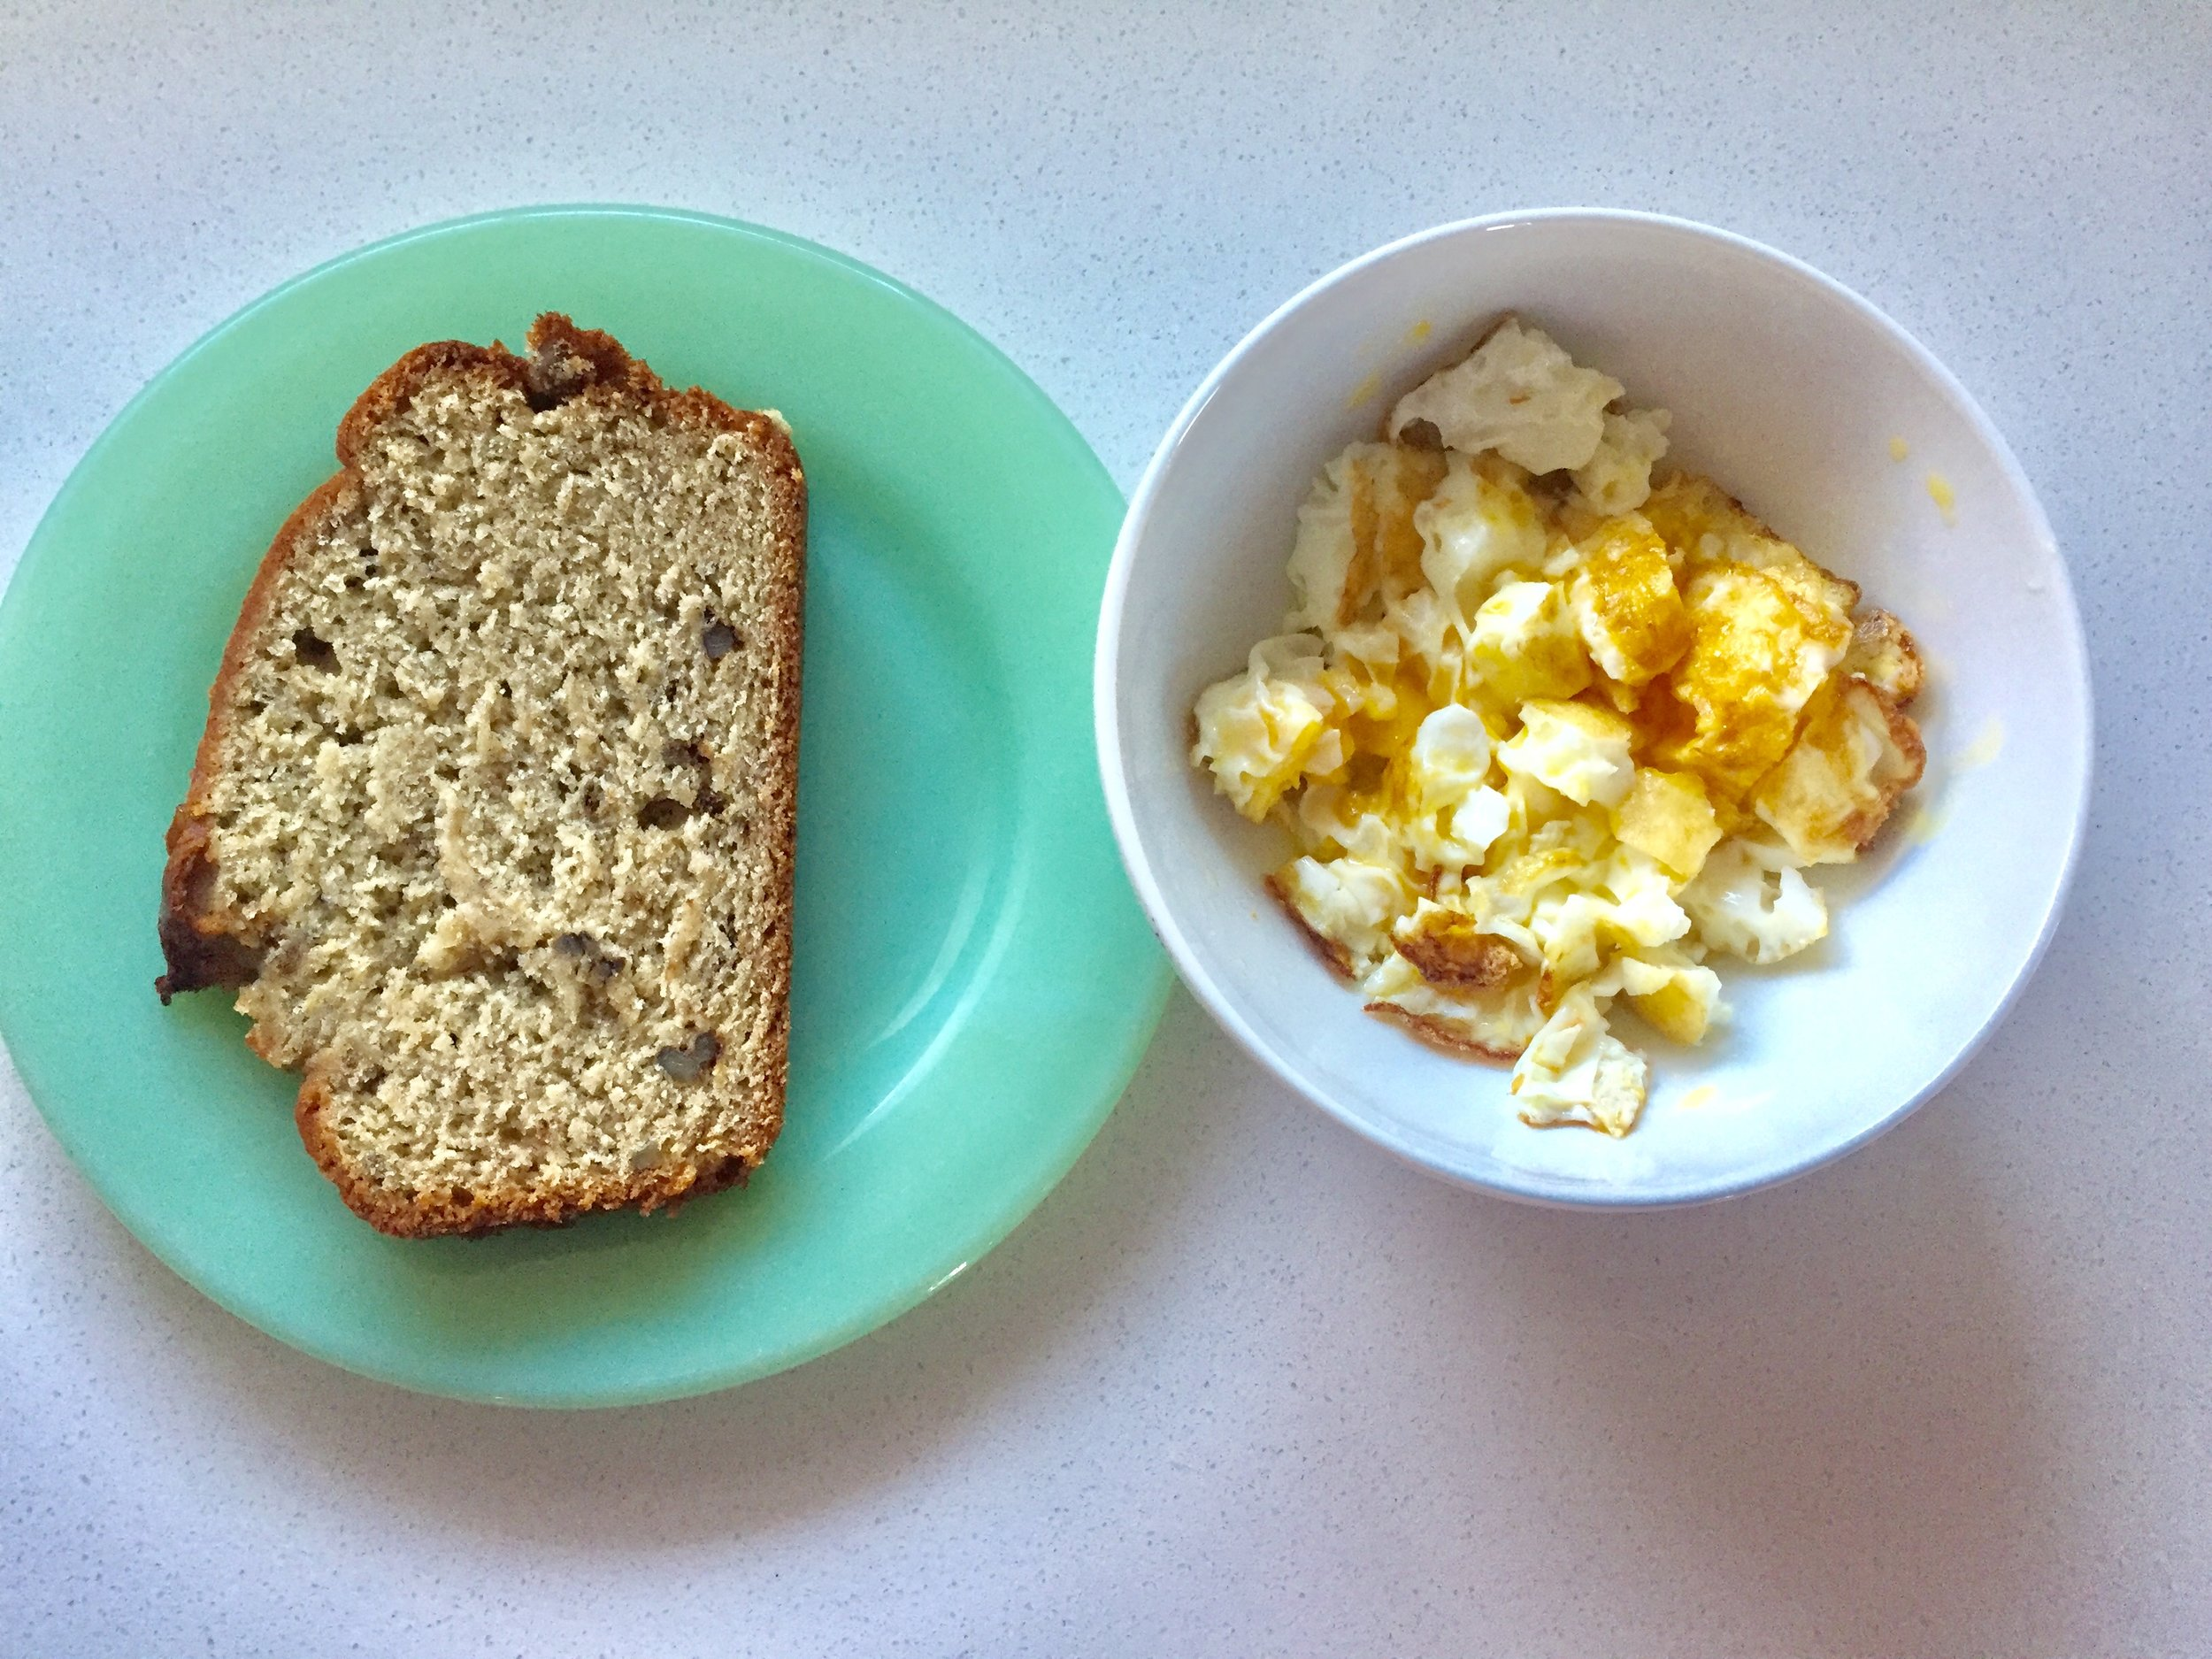 Banana bread and eggs.